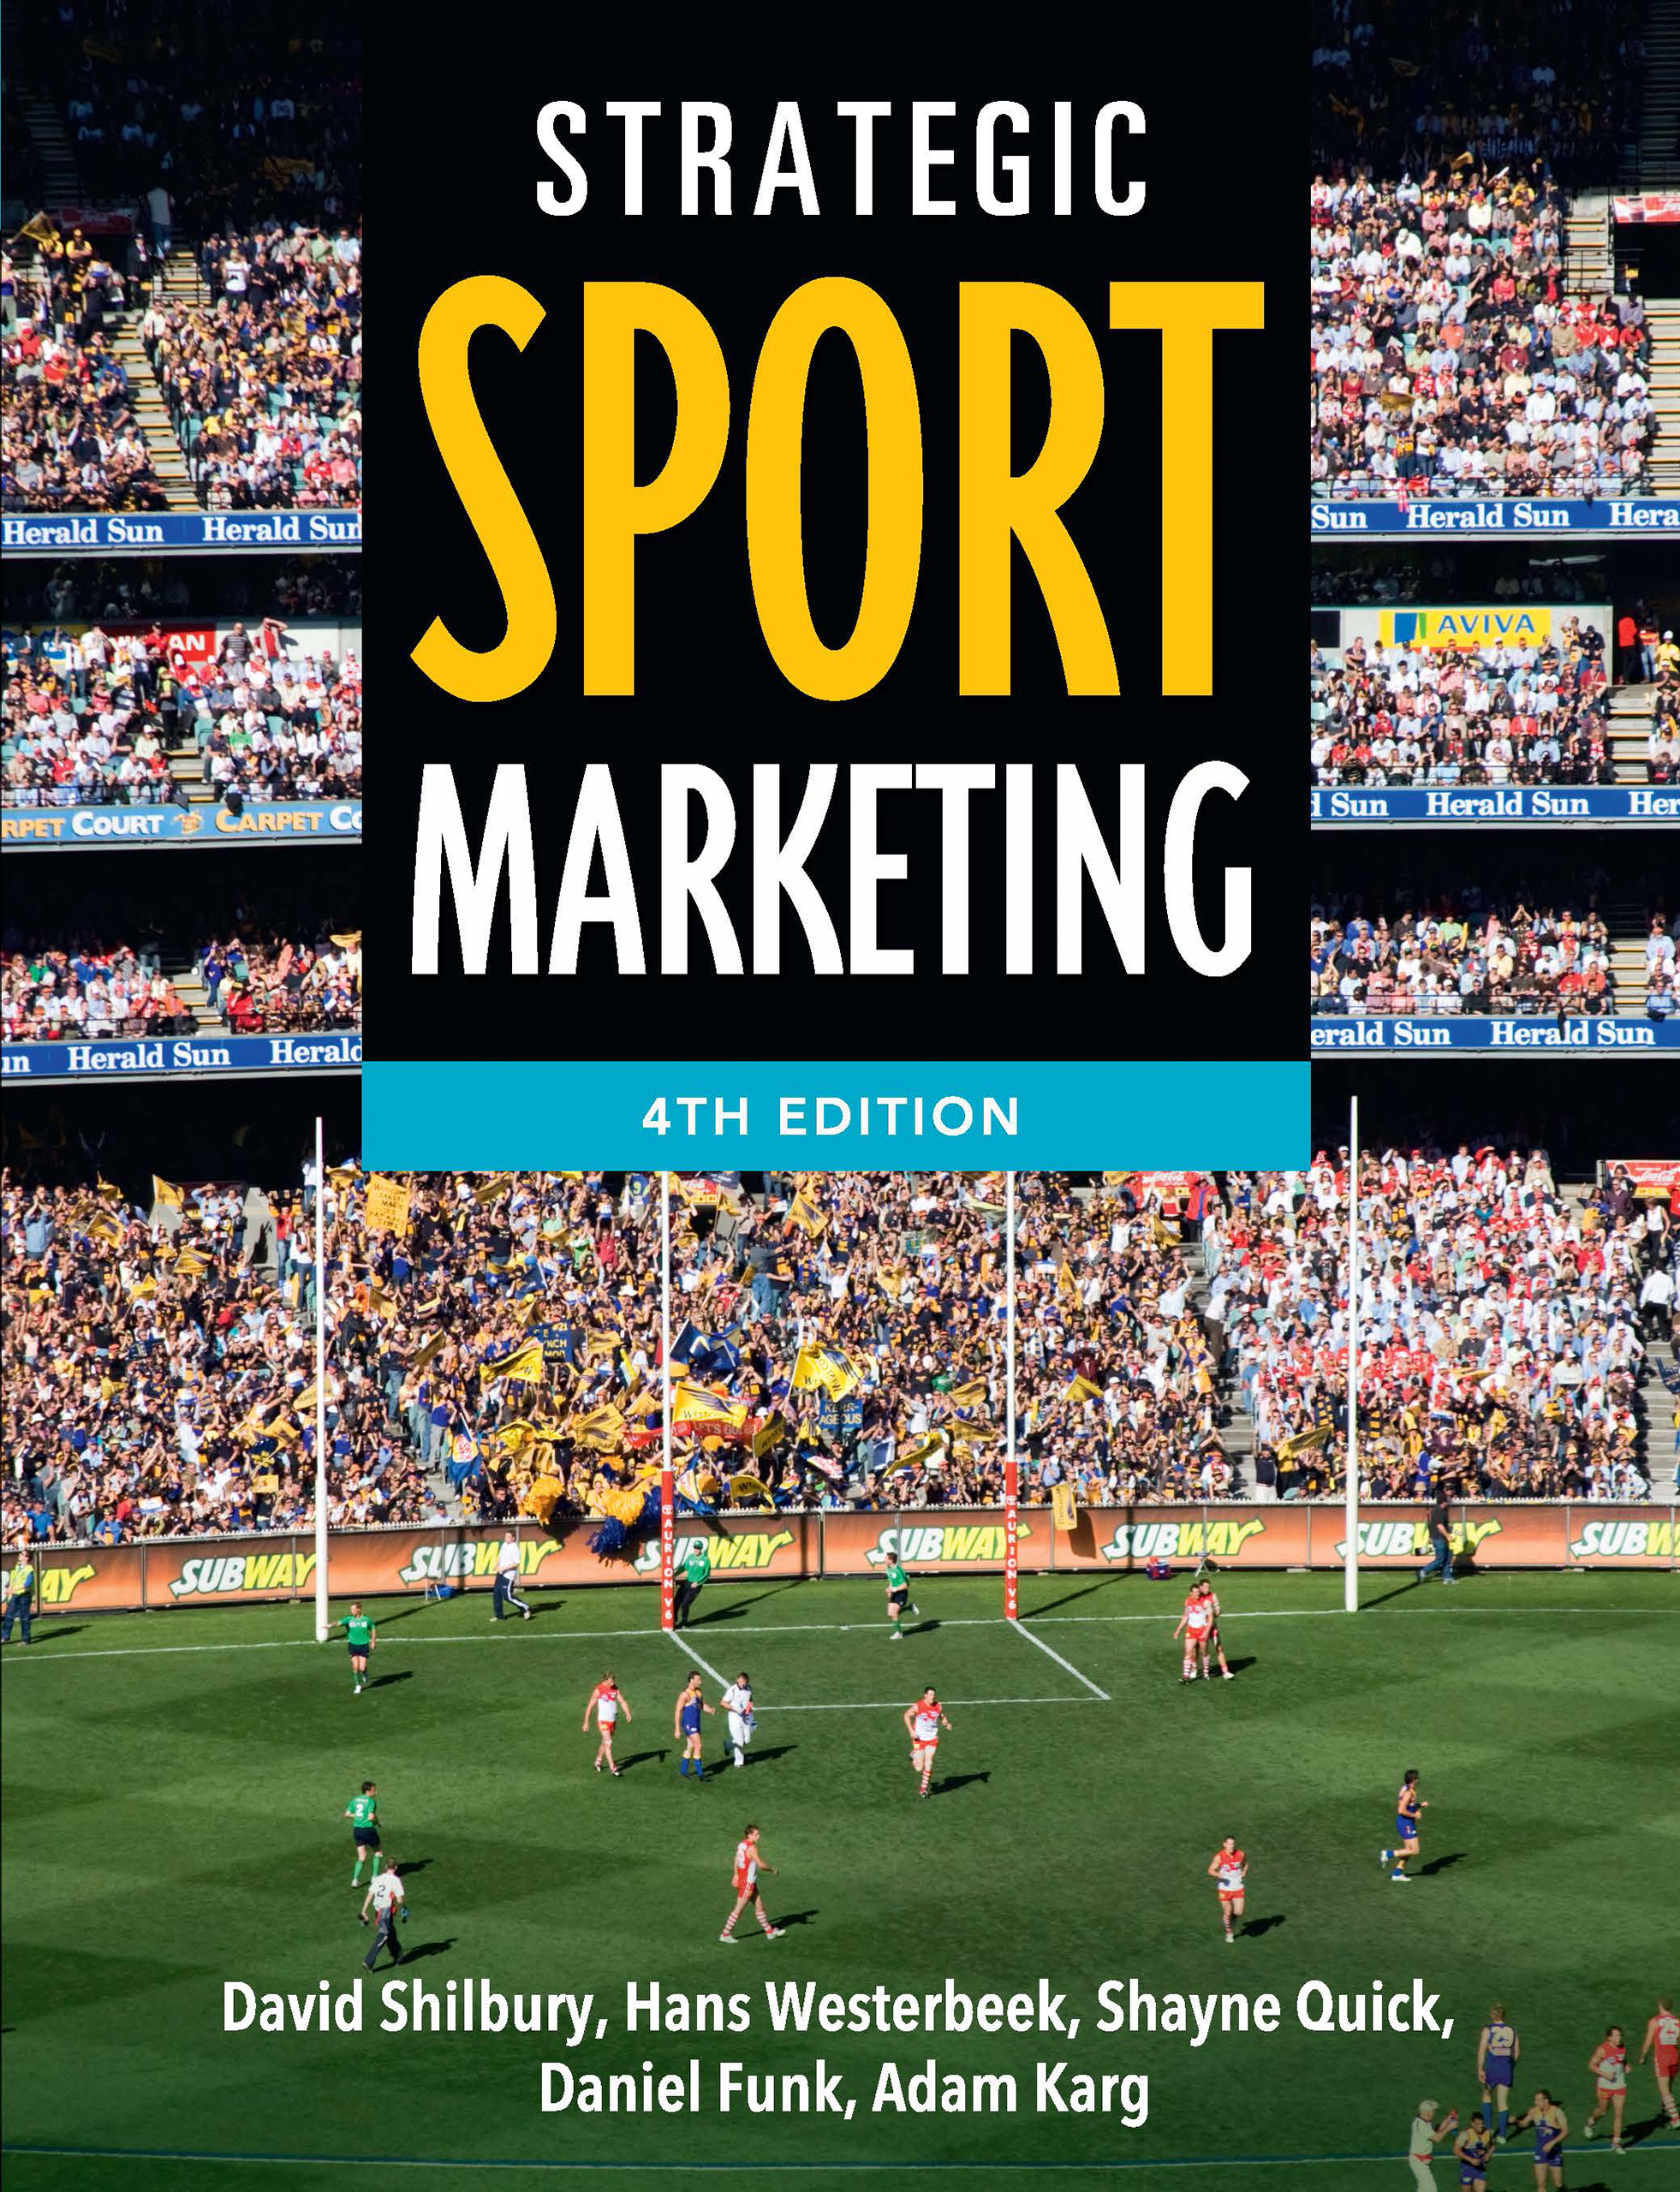 Download Ebook Strategic Sport Marketing (4th ed.) by David Shilbury Pdf